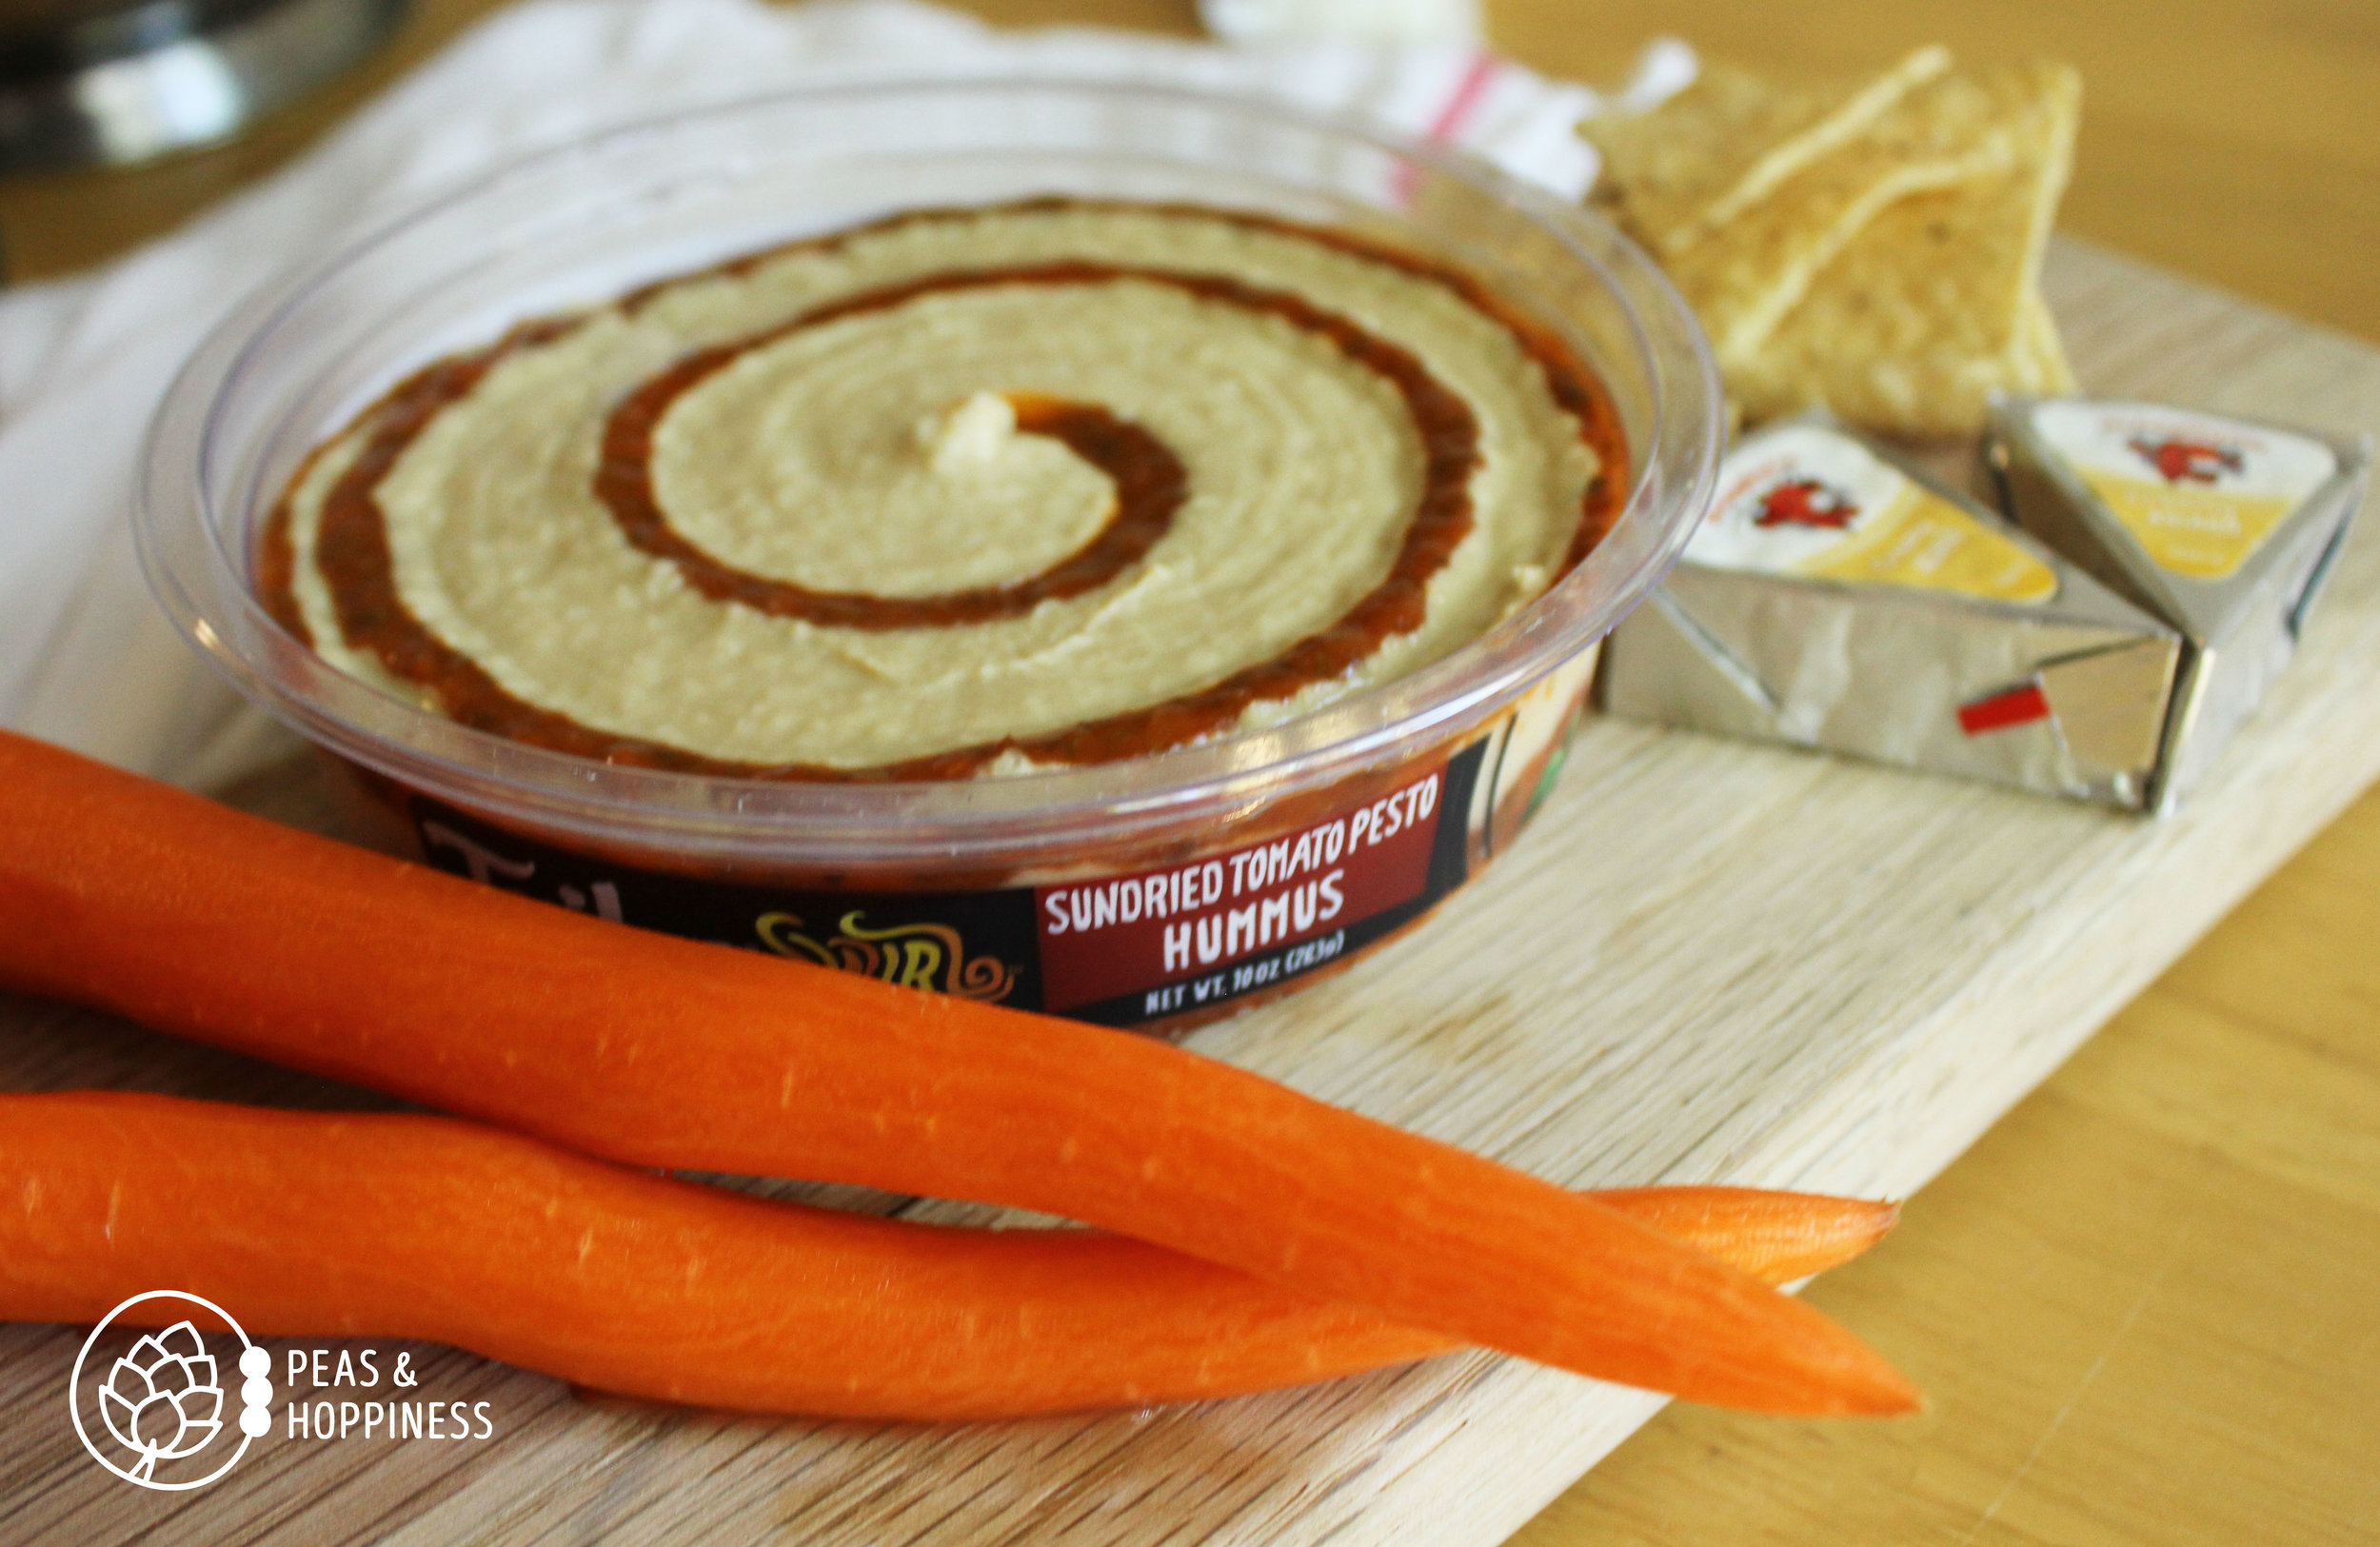 Lunch idea: Laughing Cow cheese + hummus/chips + carrots